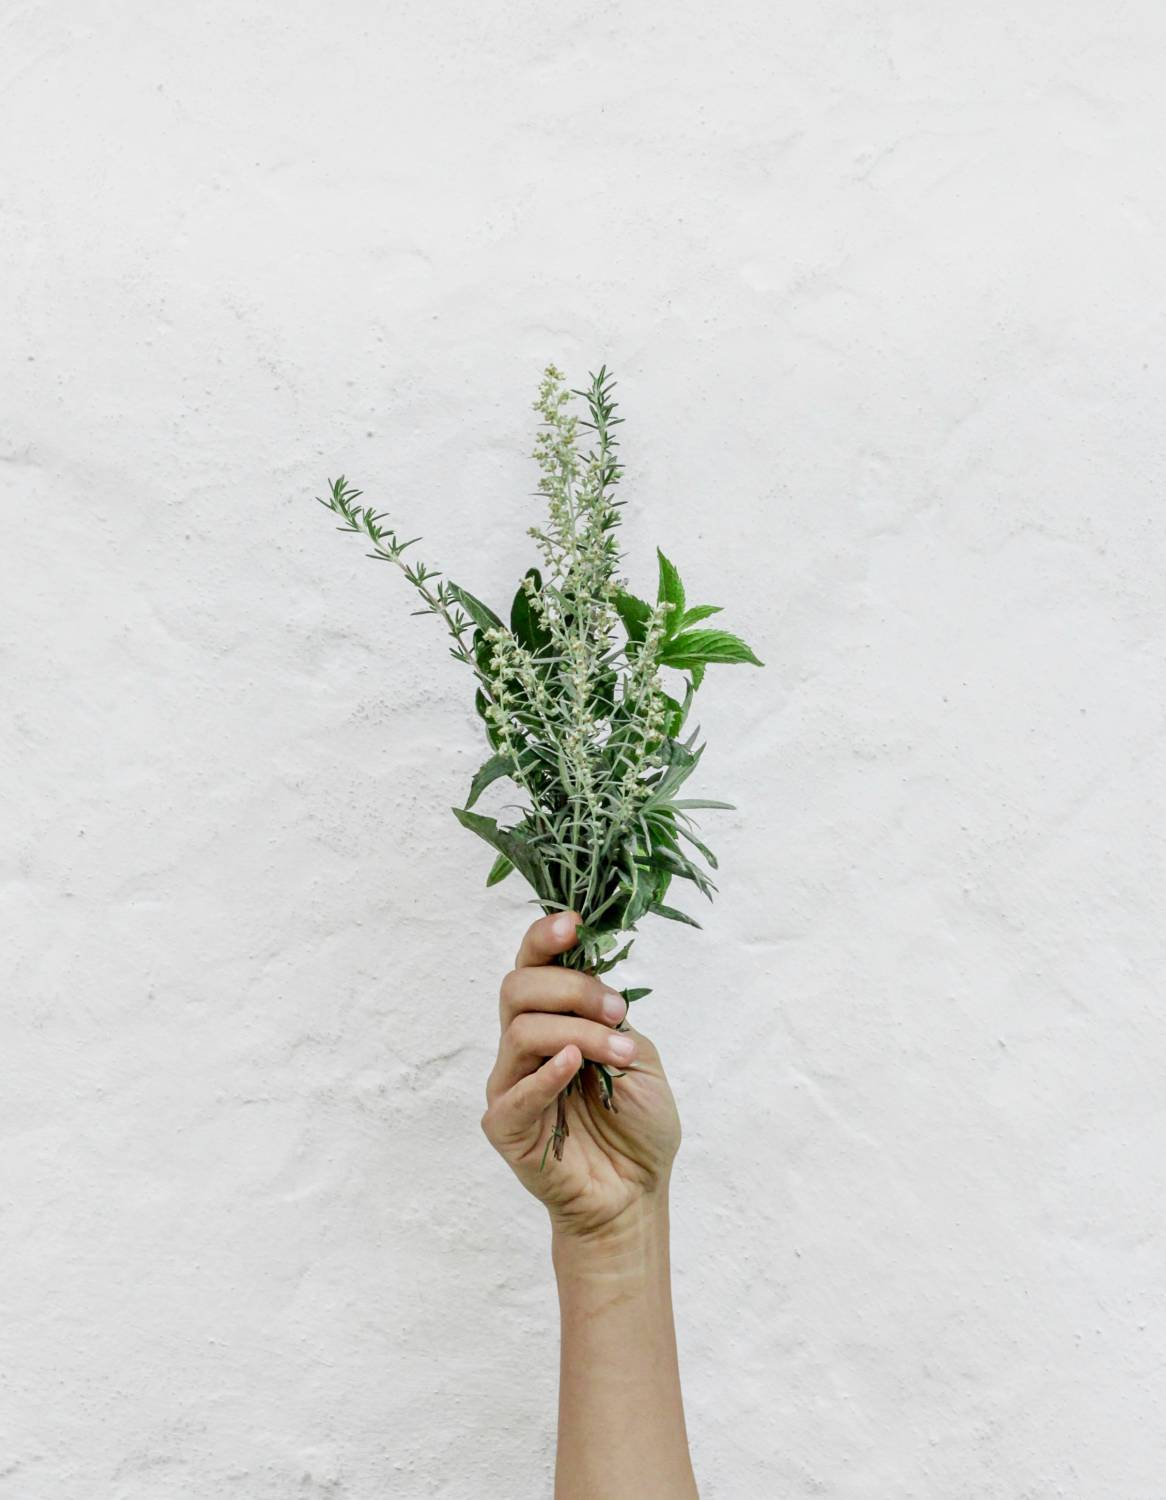 Hand holding plants on a white background